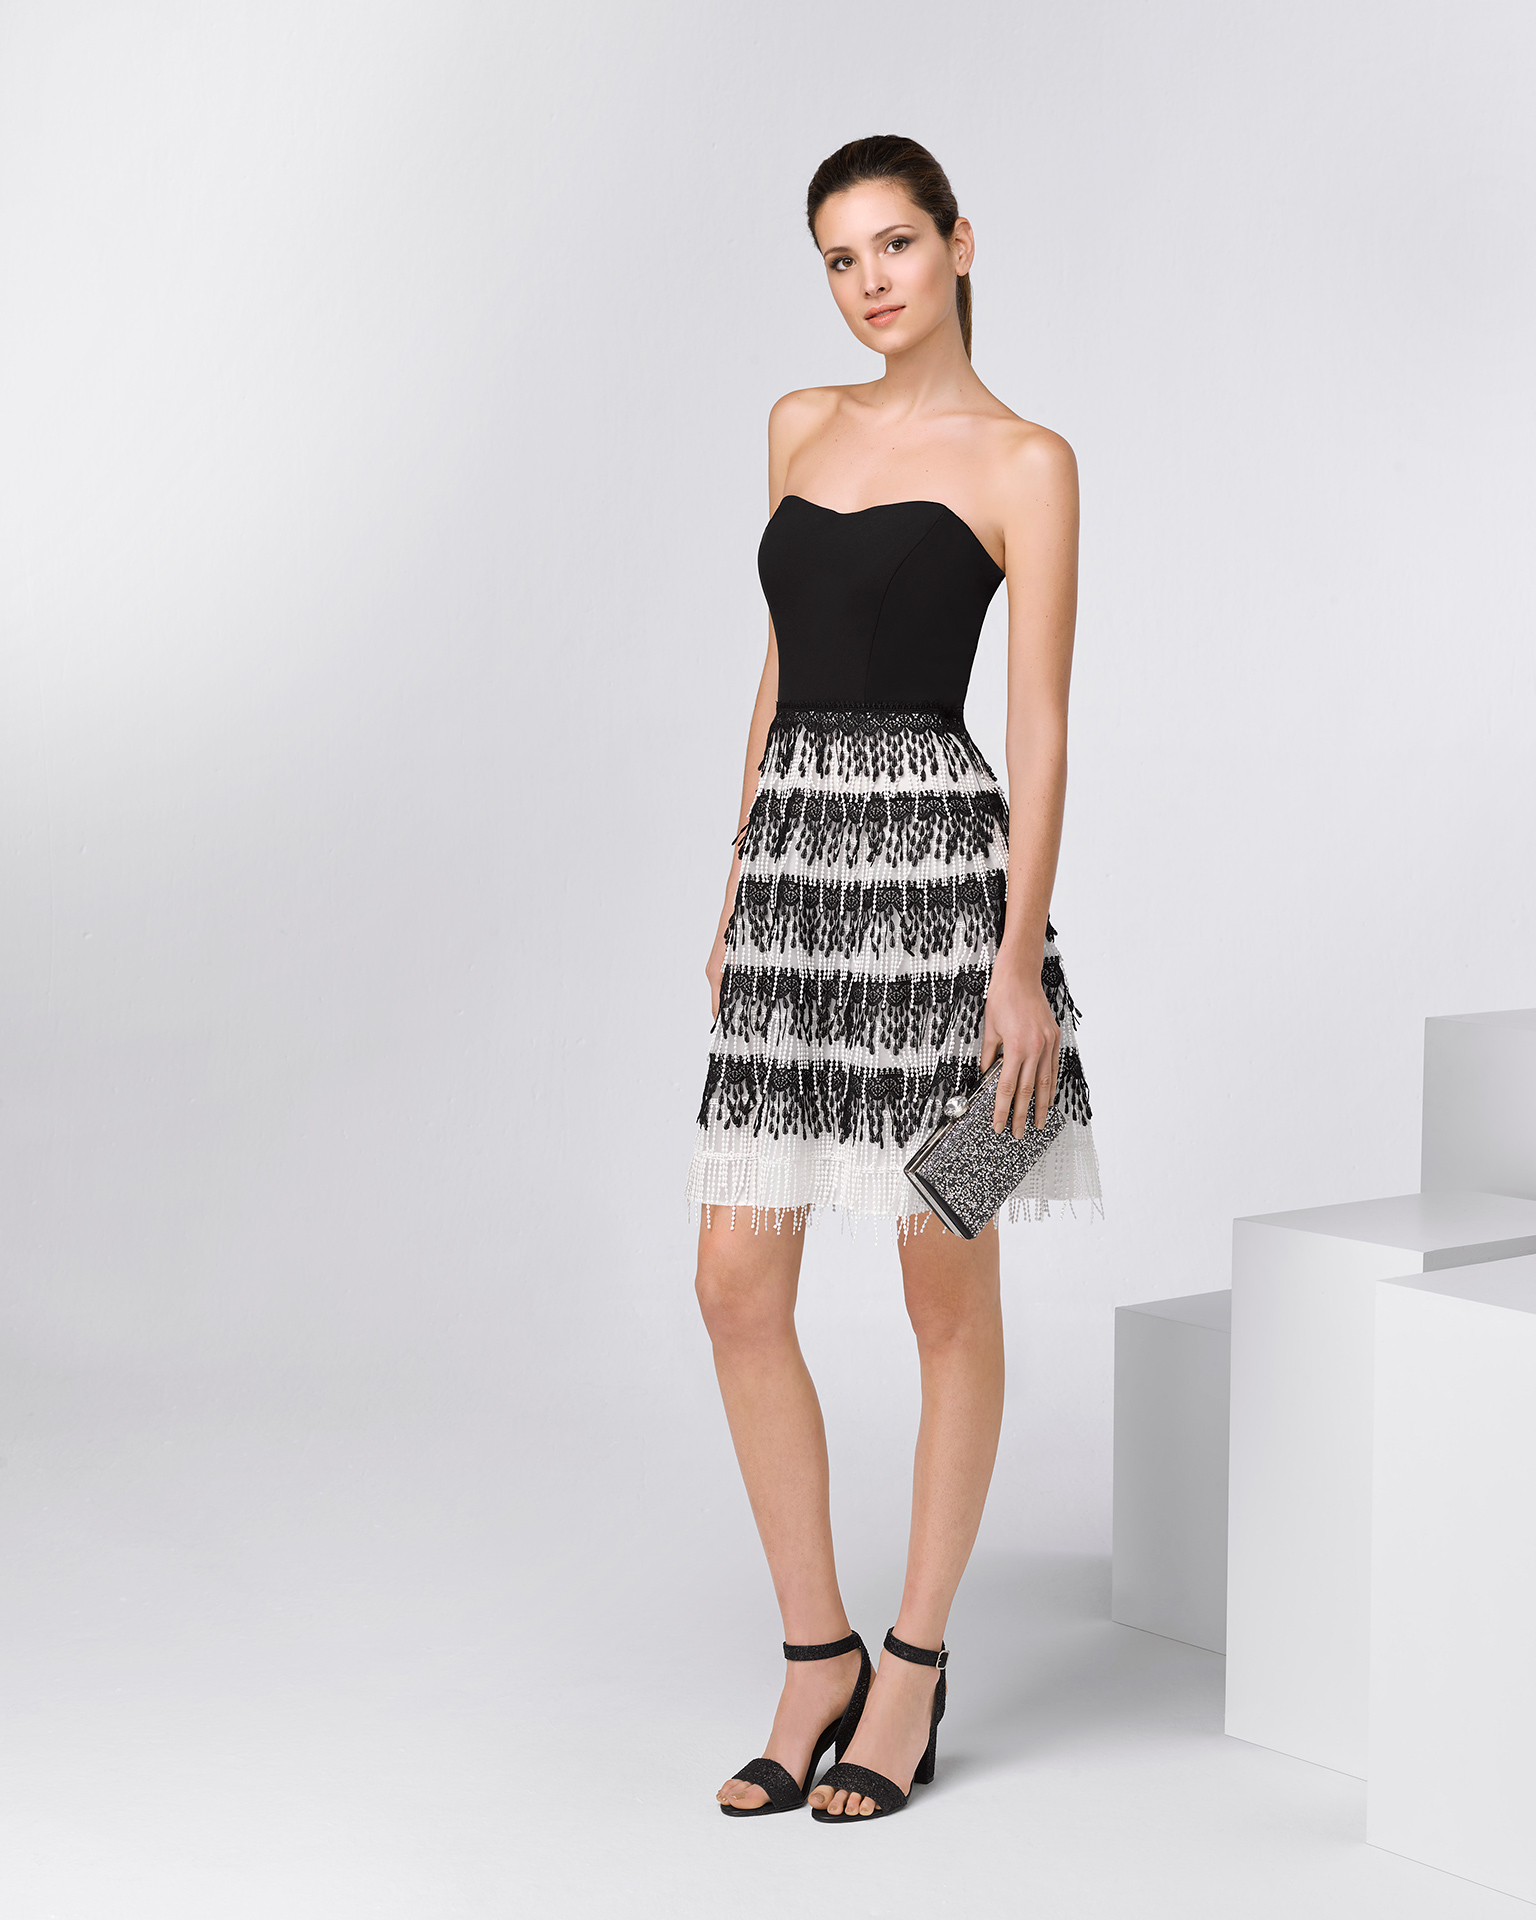 Short strapless crepe and guipure lace cocktail dress with shawl. Available in black/white. 2018 FIESTA AIRE BARCELONA Collection.